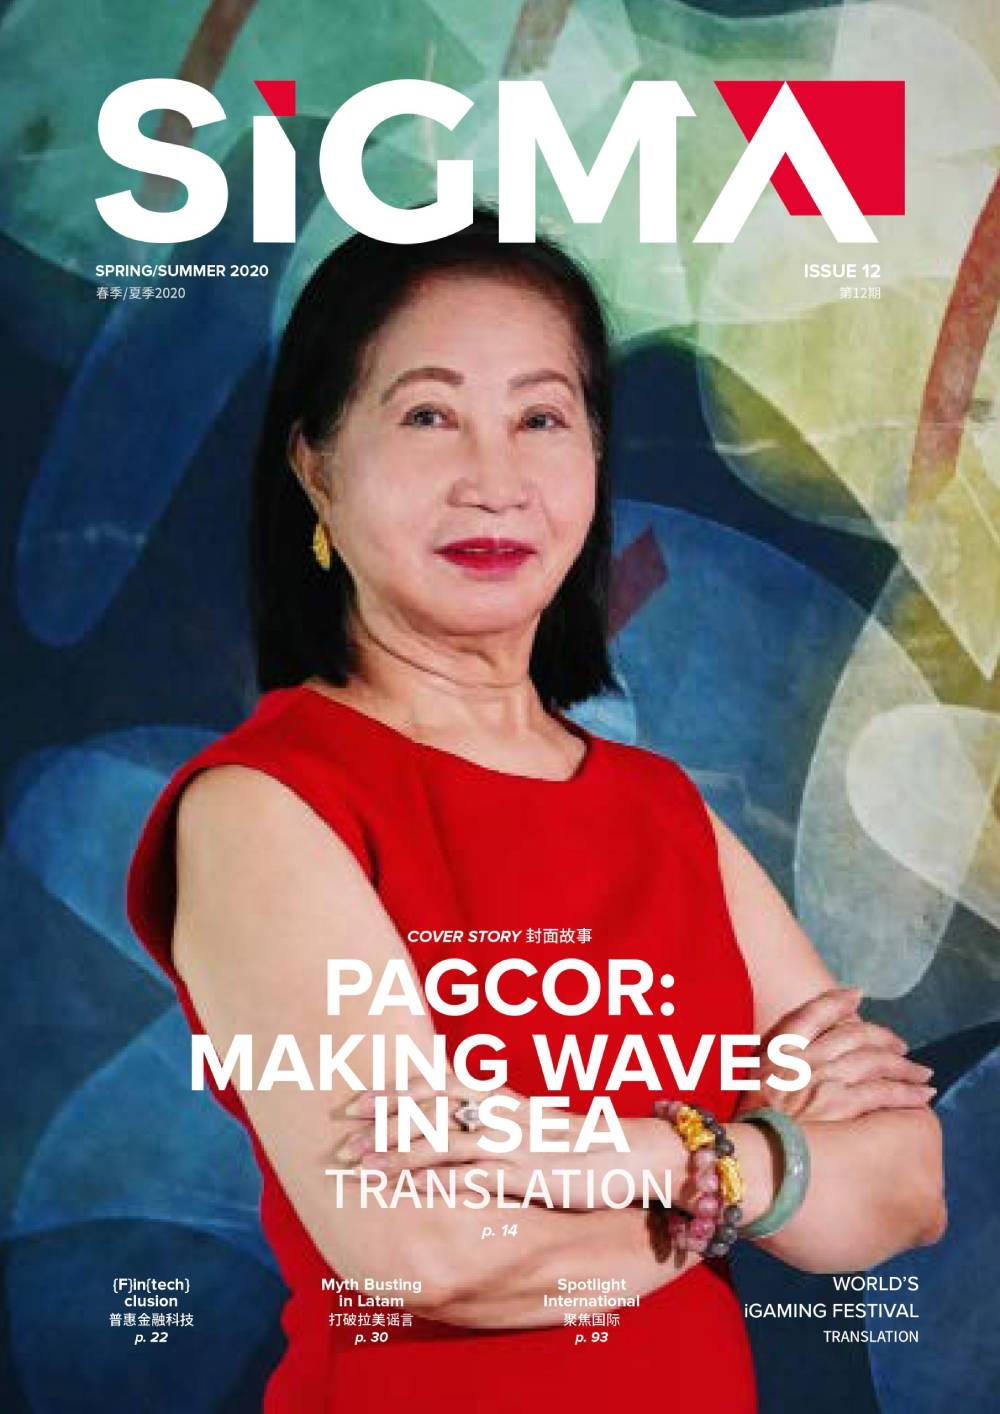 SiGMA Issue 12: PAGCOR: making waves in sea